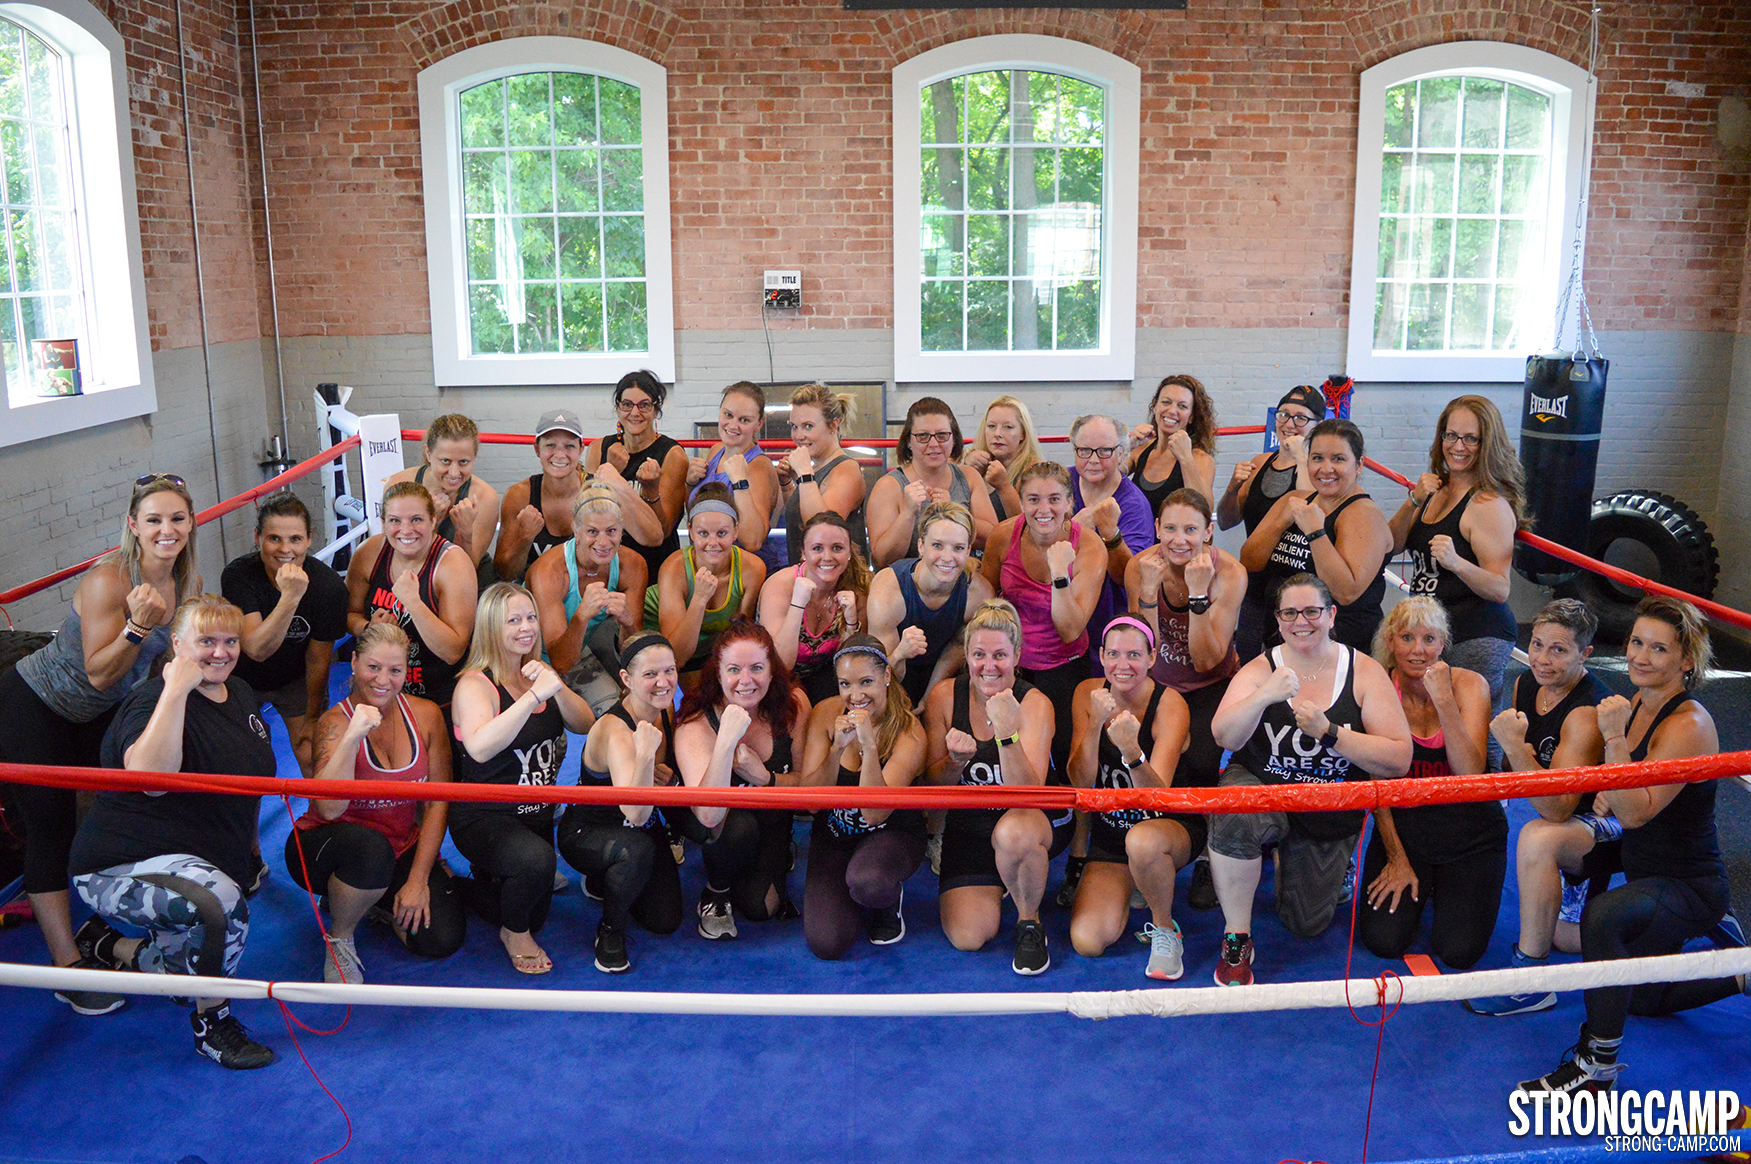 STRONGCAMP boxing at on the ropes group photo